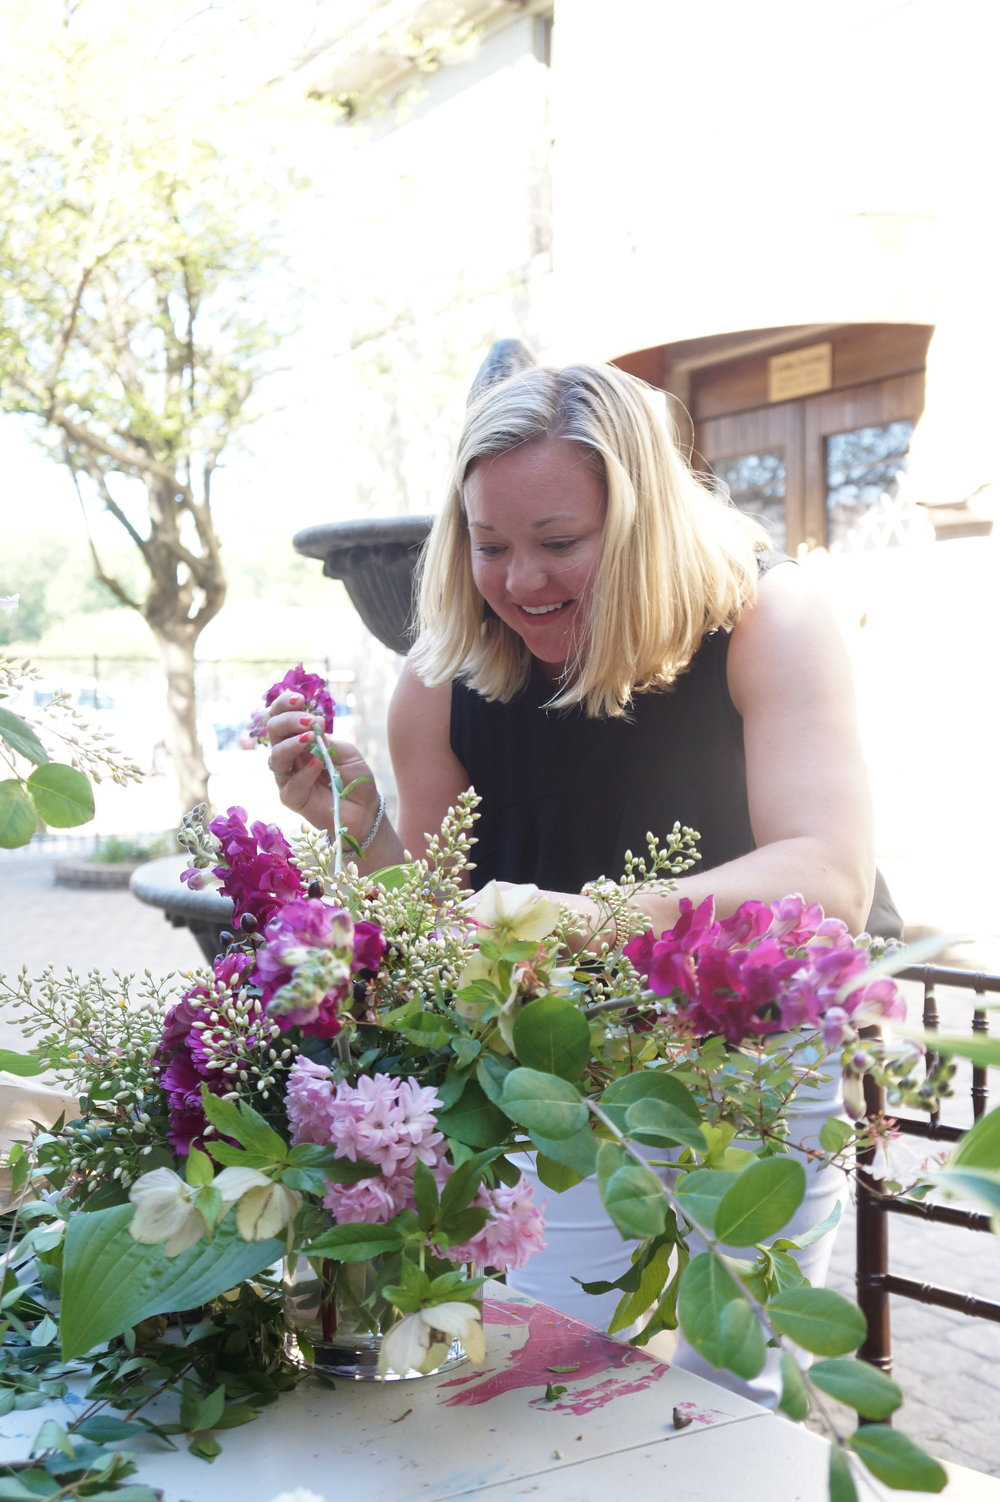 Andrea Fenise Memphis Fashion Blogger shares how to make a diy floral arrangement for mother's day